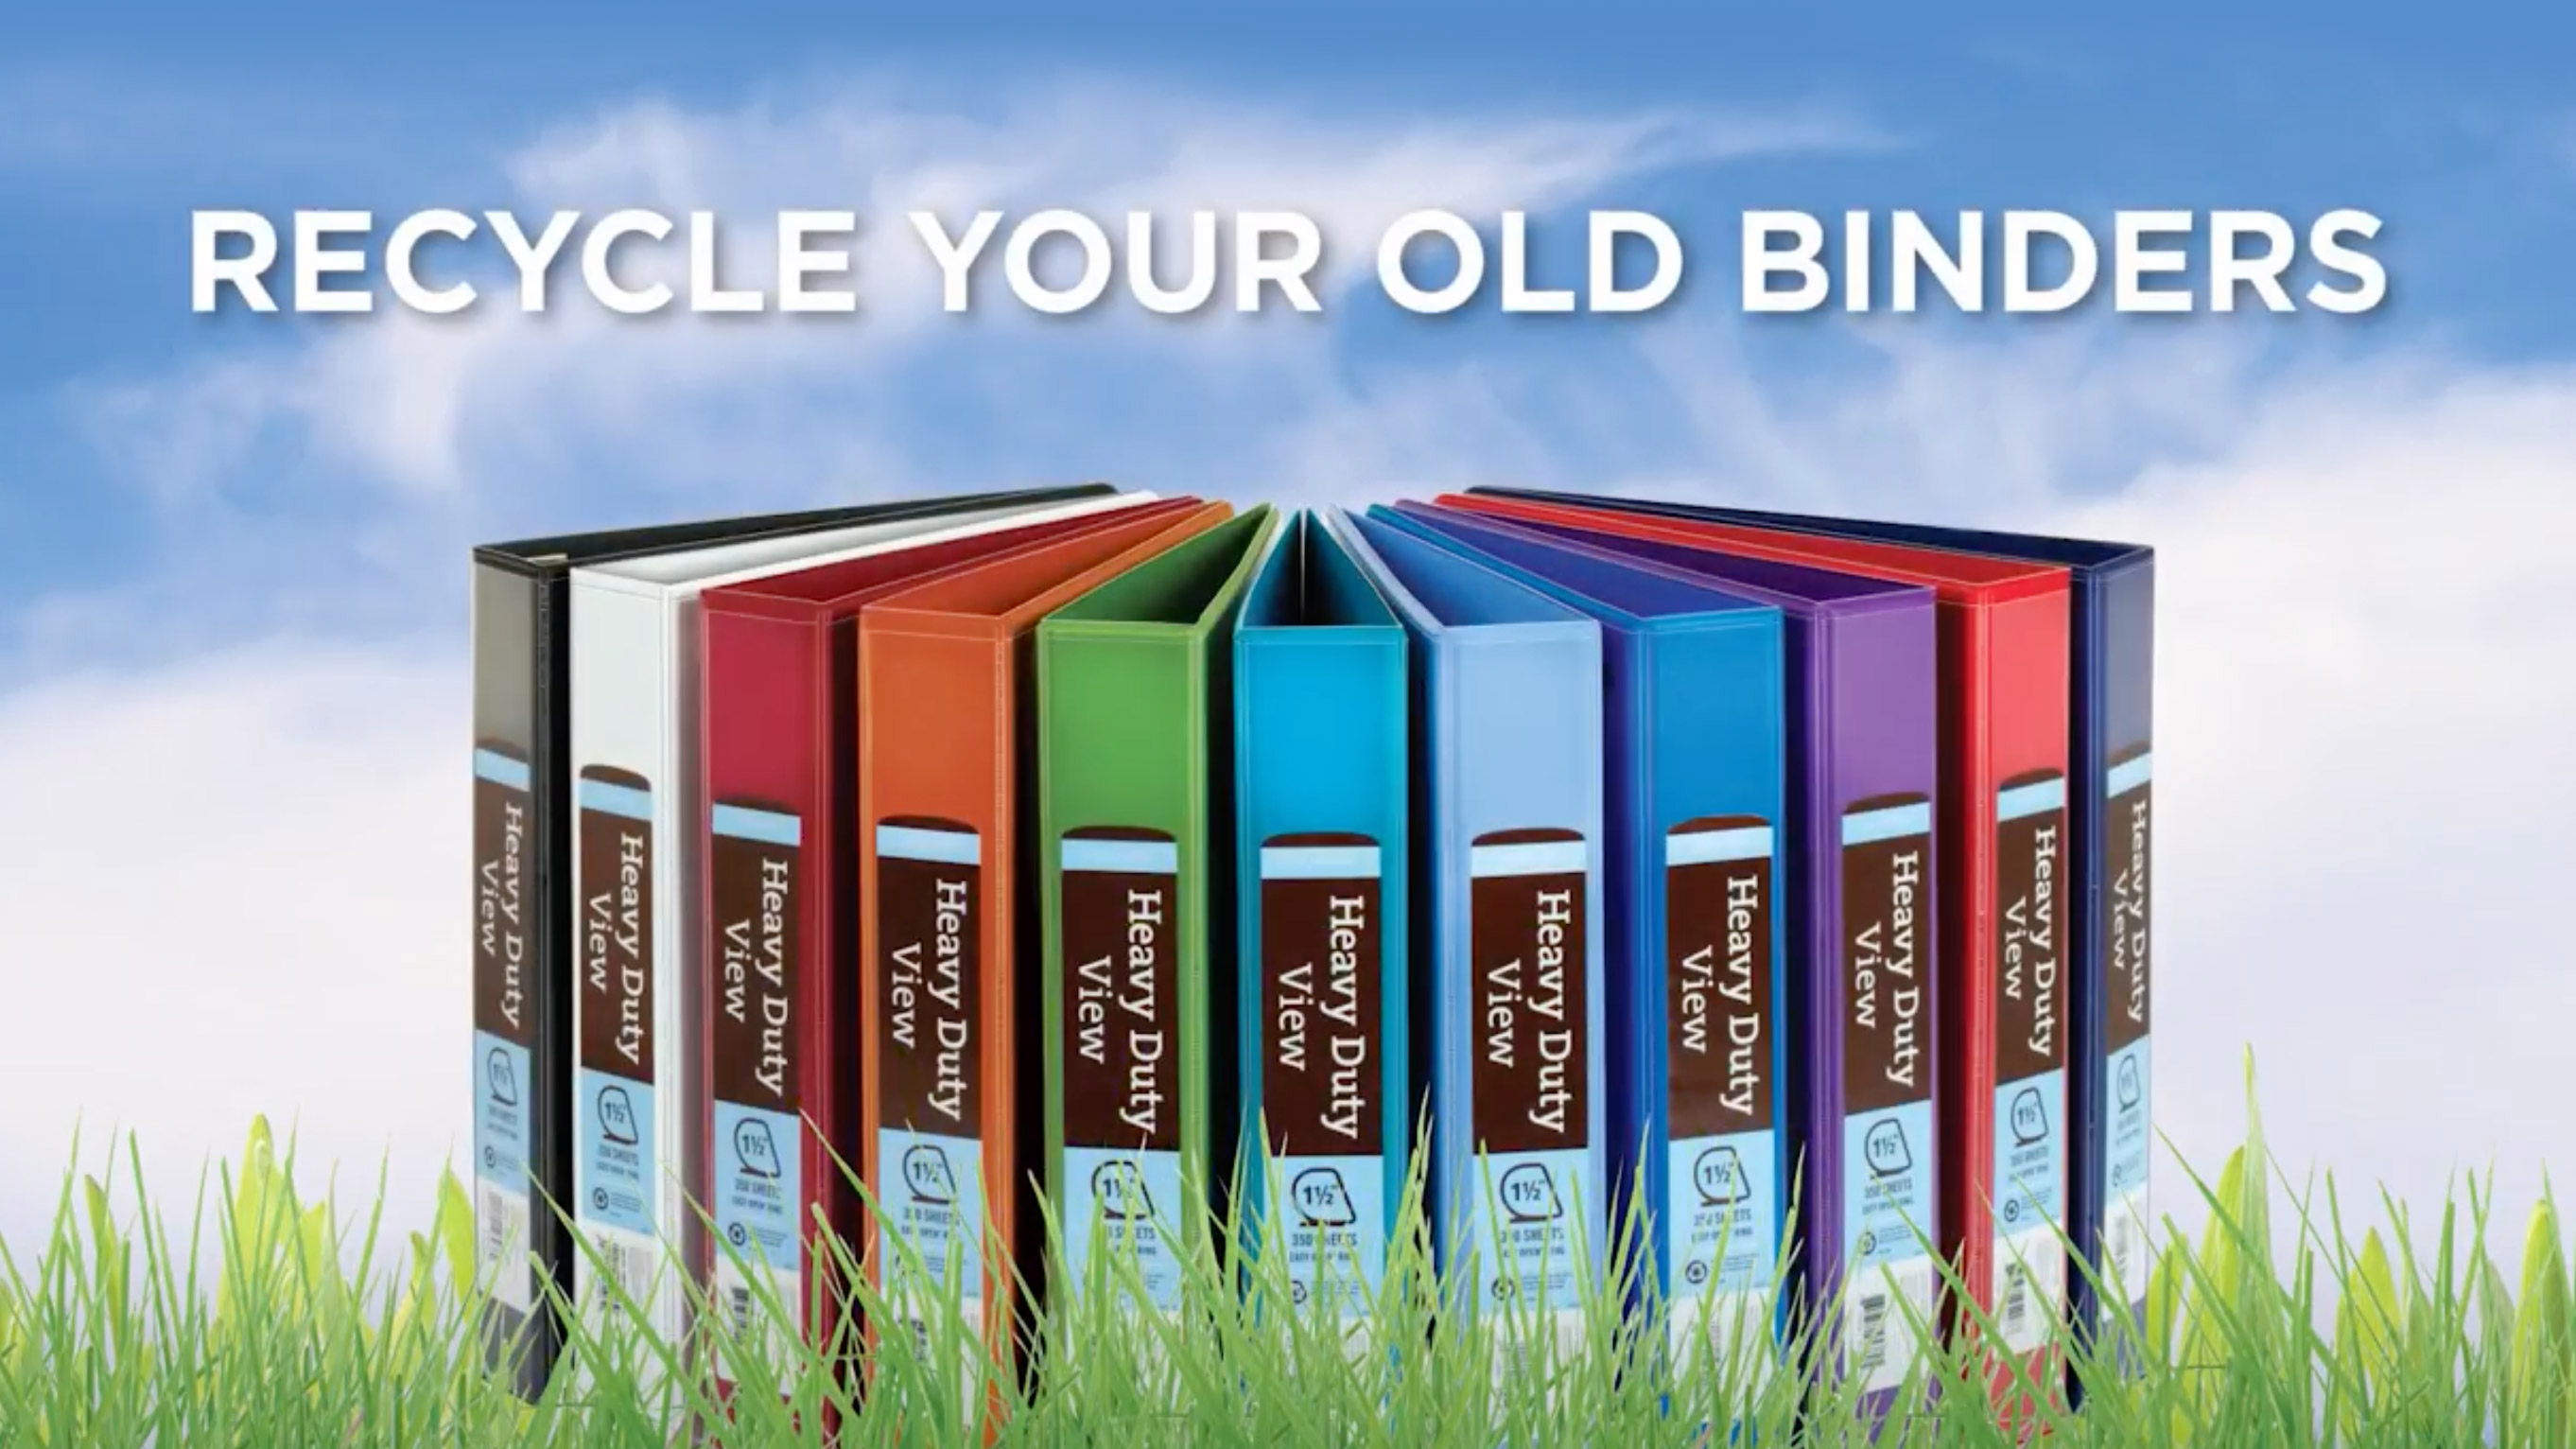 Office depot services register new product - Office Depot Office Max Binder Recycling Program With Terra Cycle